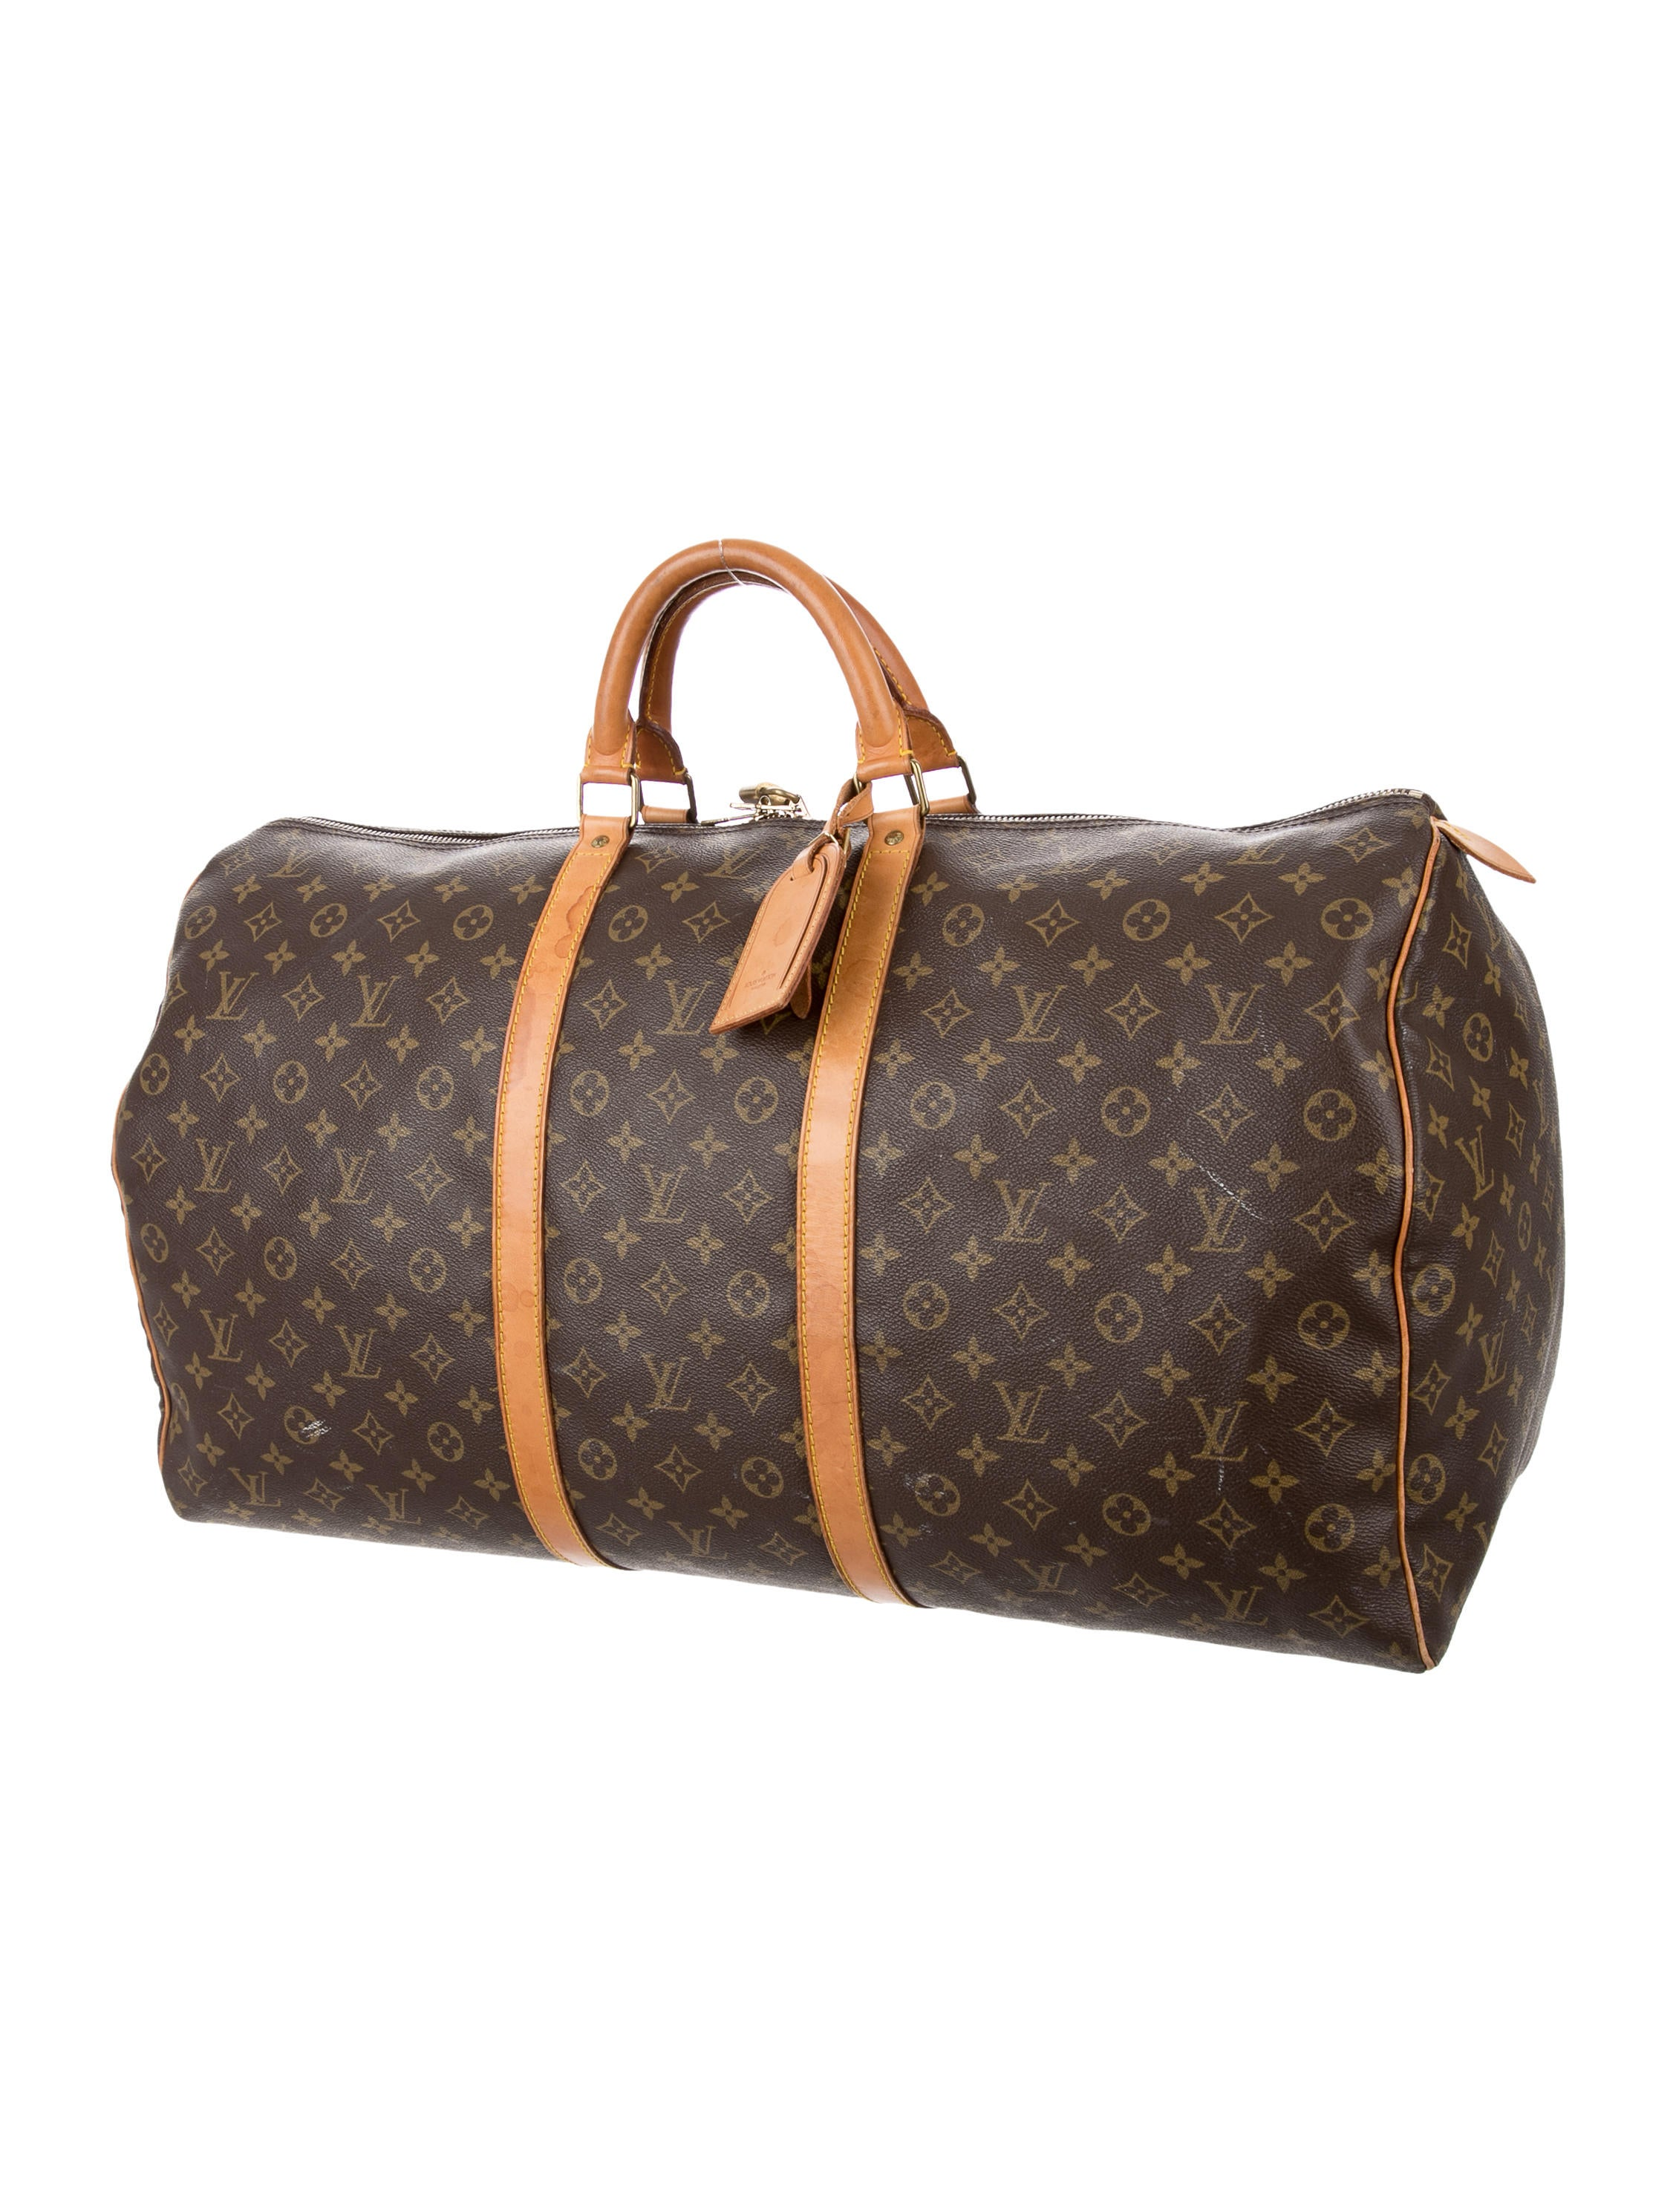 louis vuitton monogram keepall 60 luggage lou123051 the realreal. Black Bedroom Furniture Sets. Home Design Ideas